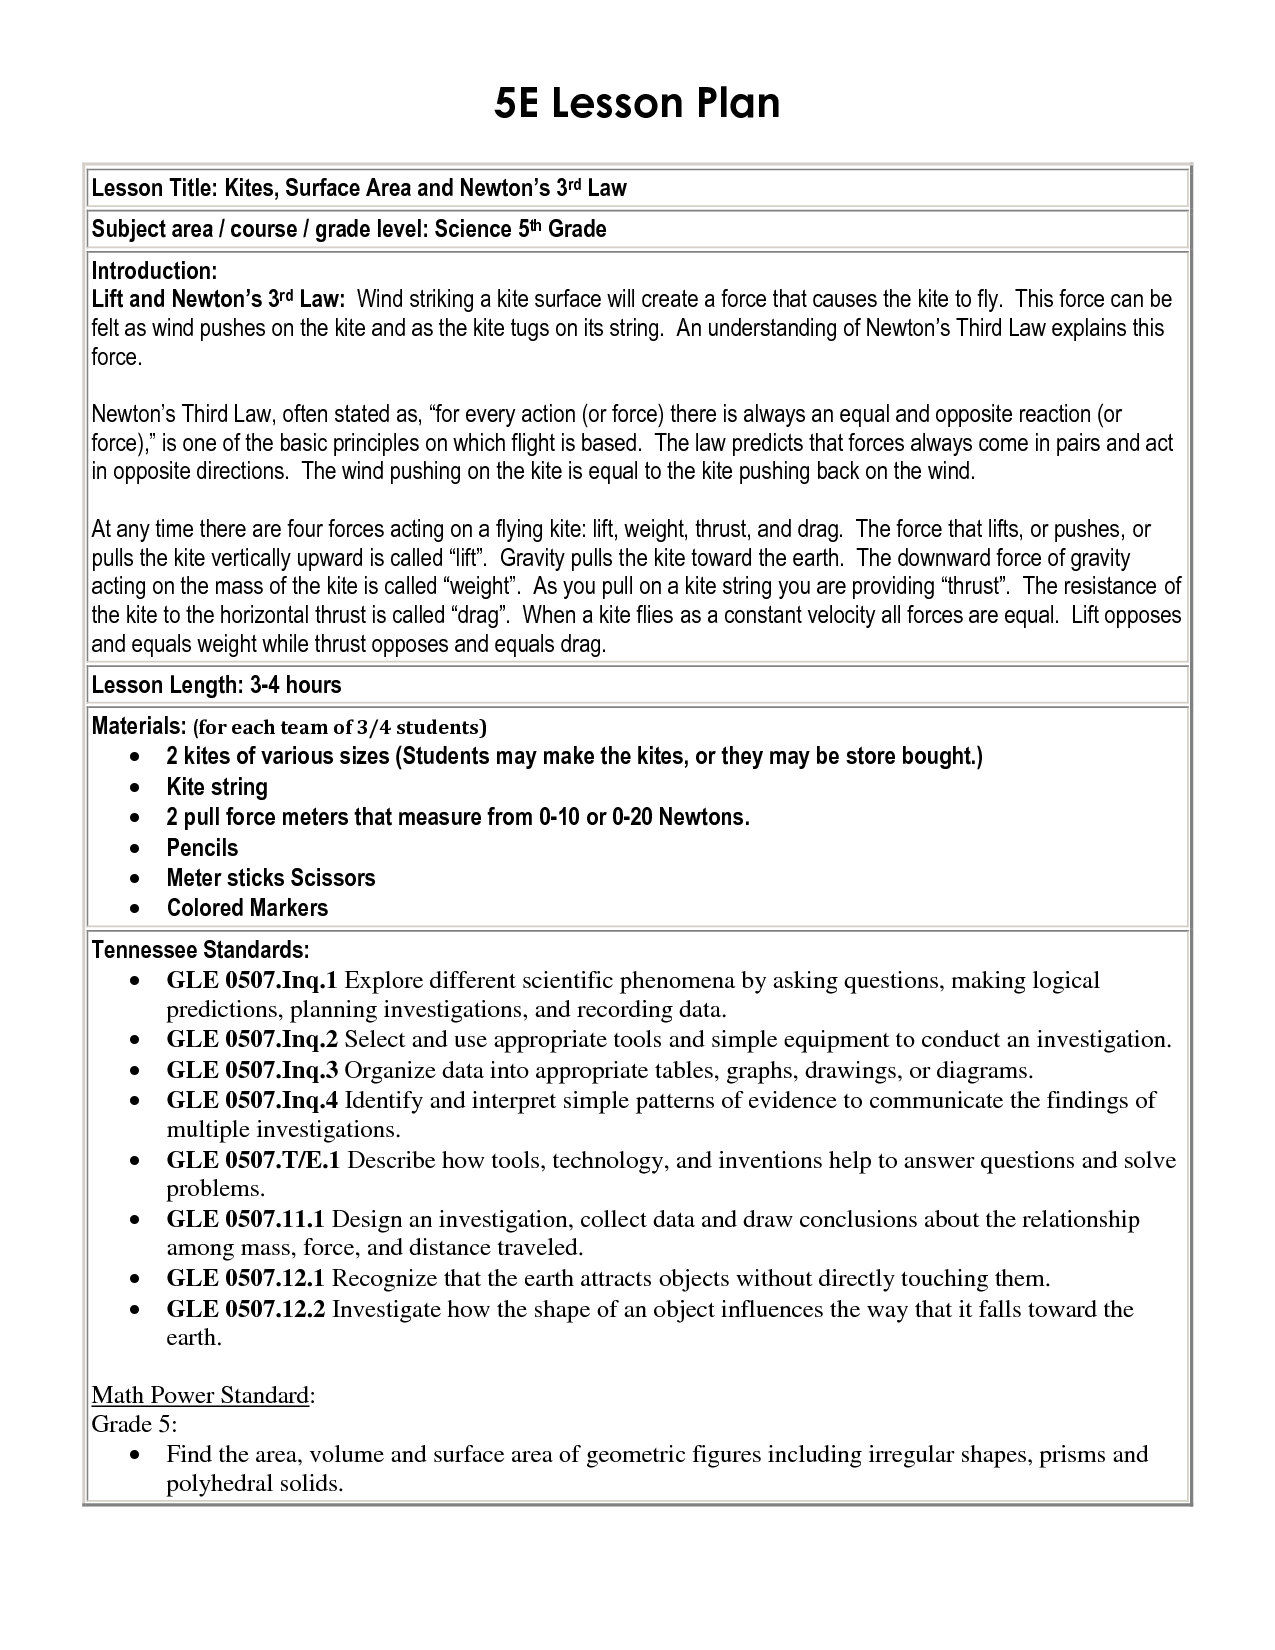 5 e lesson plan template 5e lesson plan template school 5 e lesson plan template 5e lesson plan template saigontimesfo